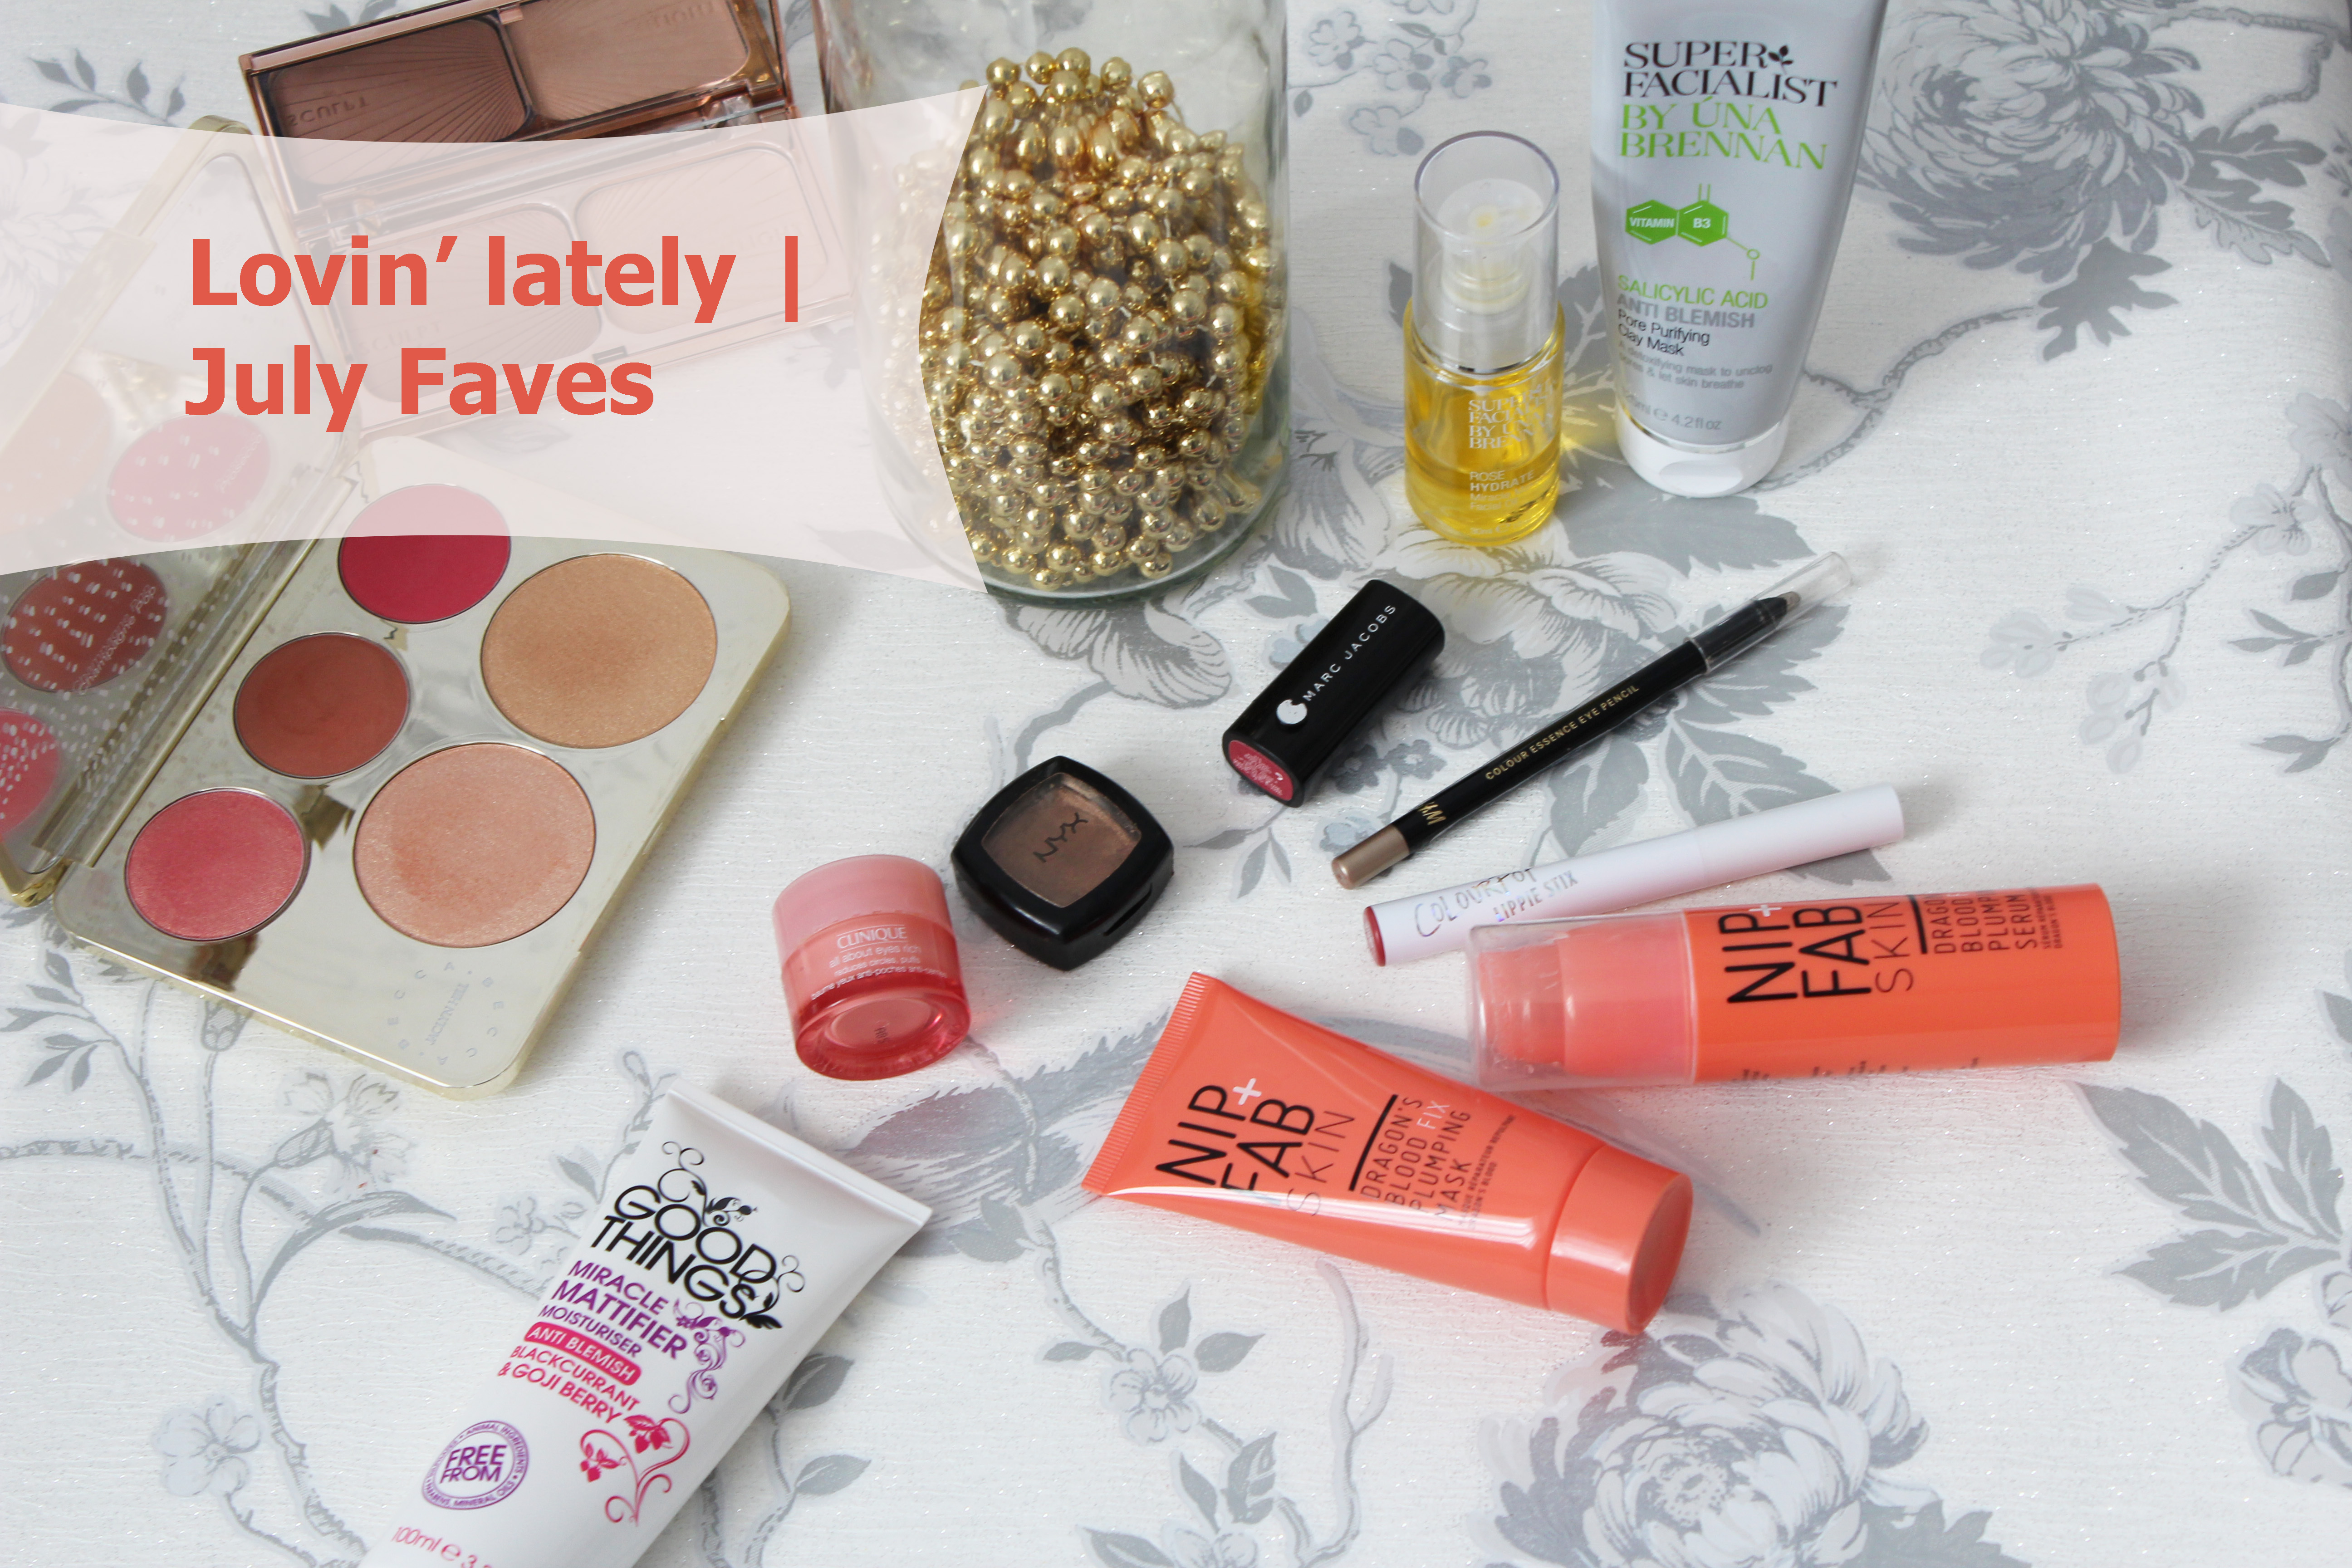 Lovin' lately | July Faves